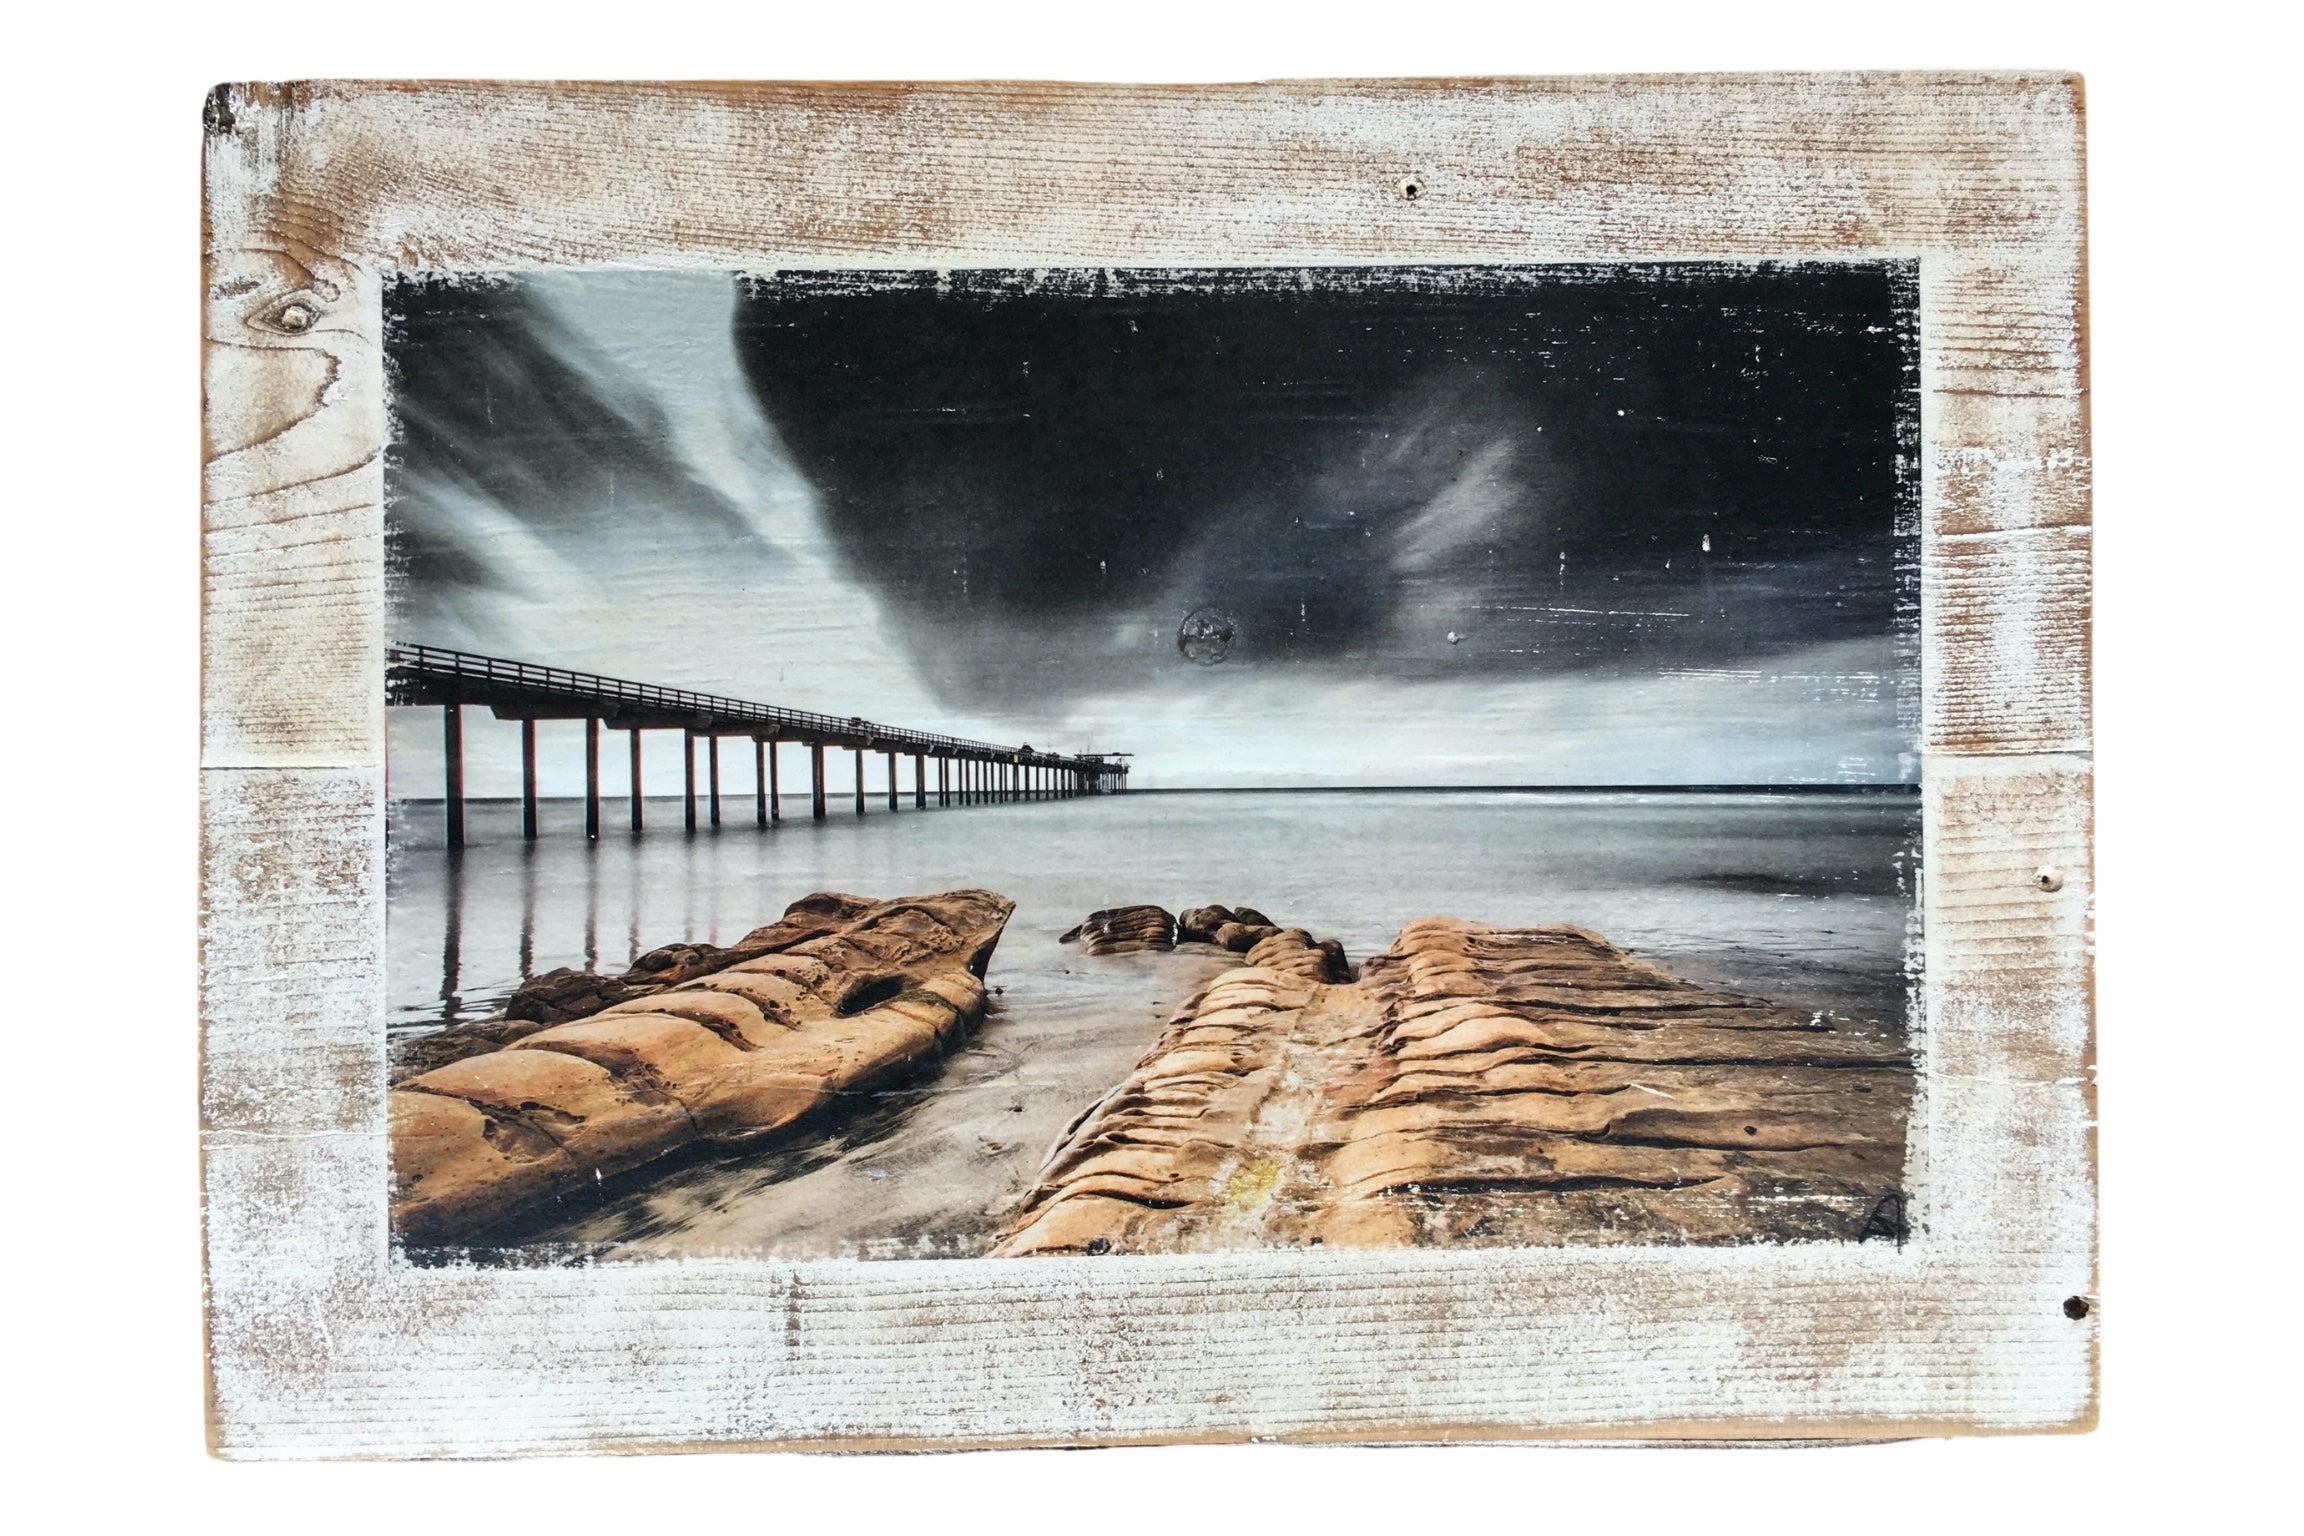 Wood photo art of a pier at the beach